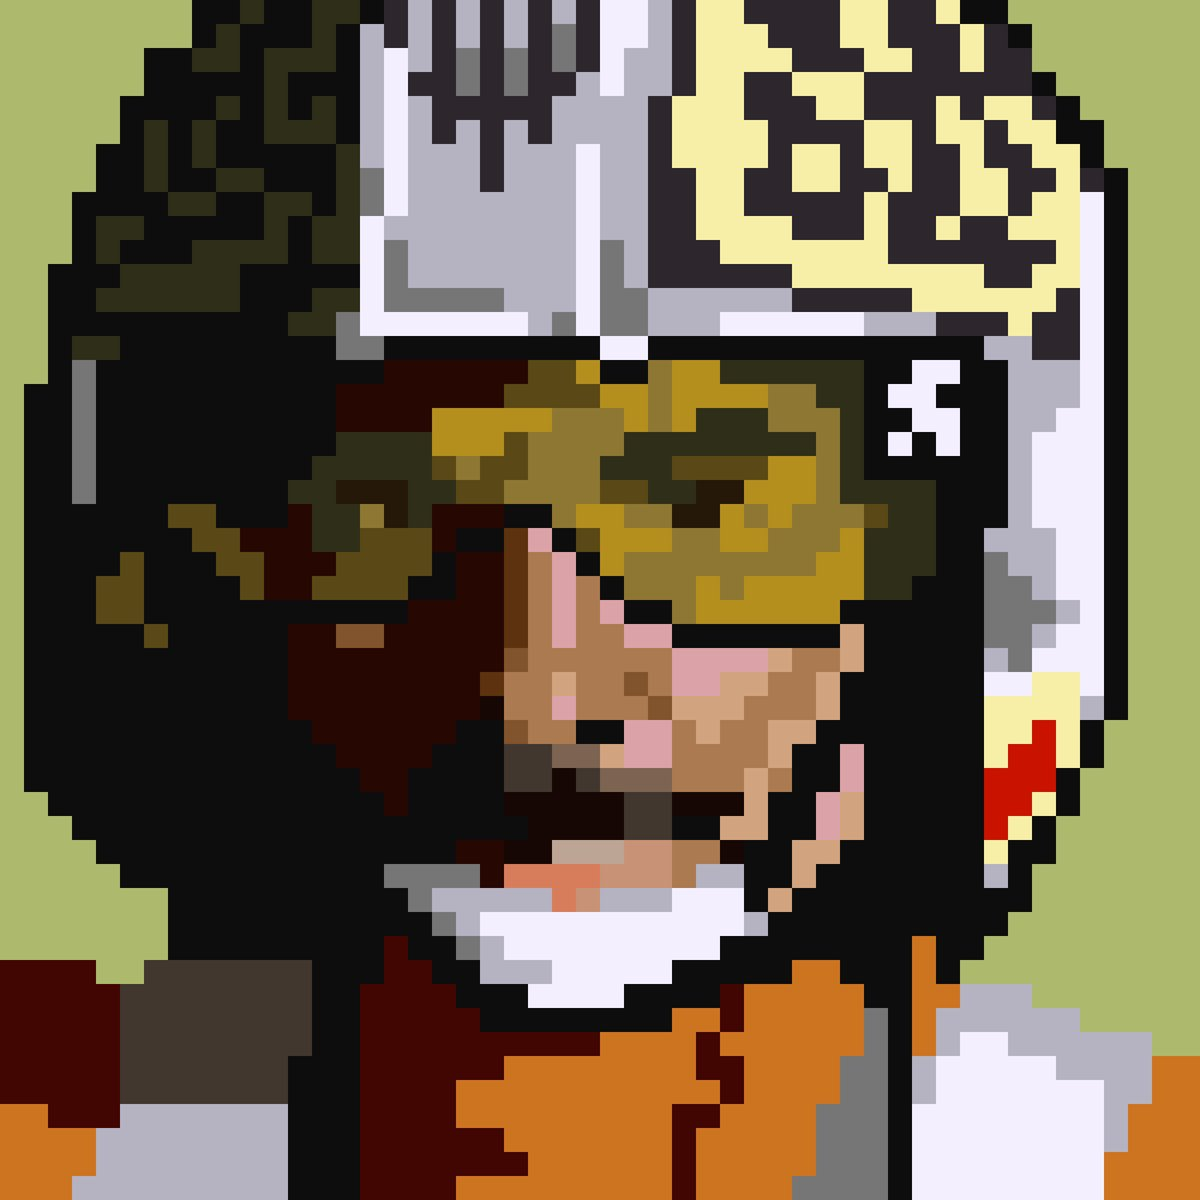 Star Wars Pixel Art on Twitter: